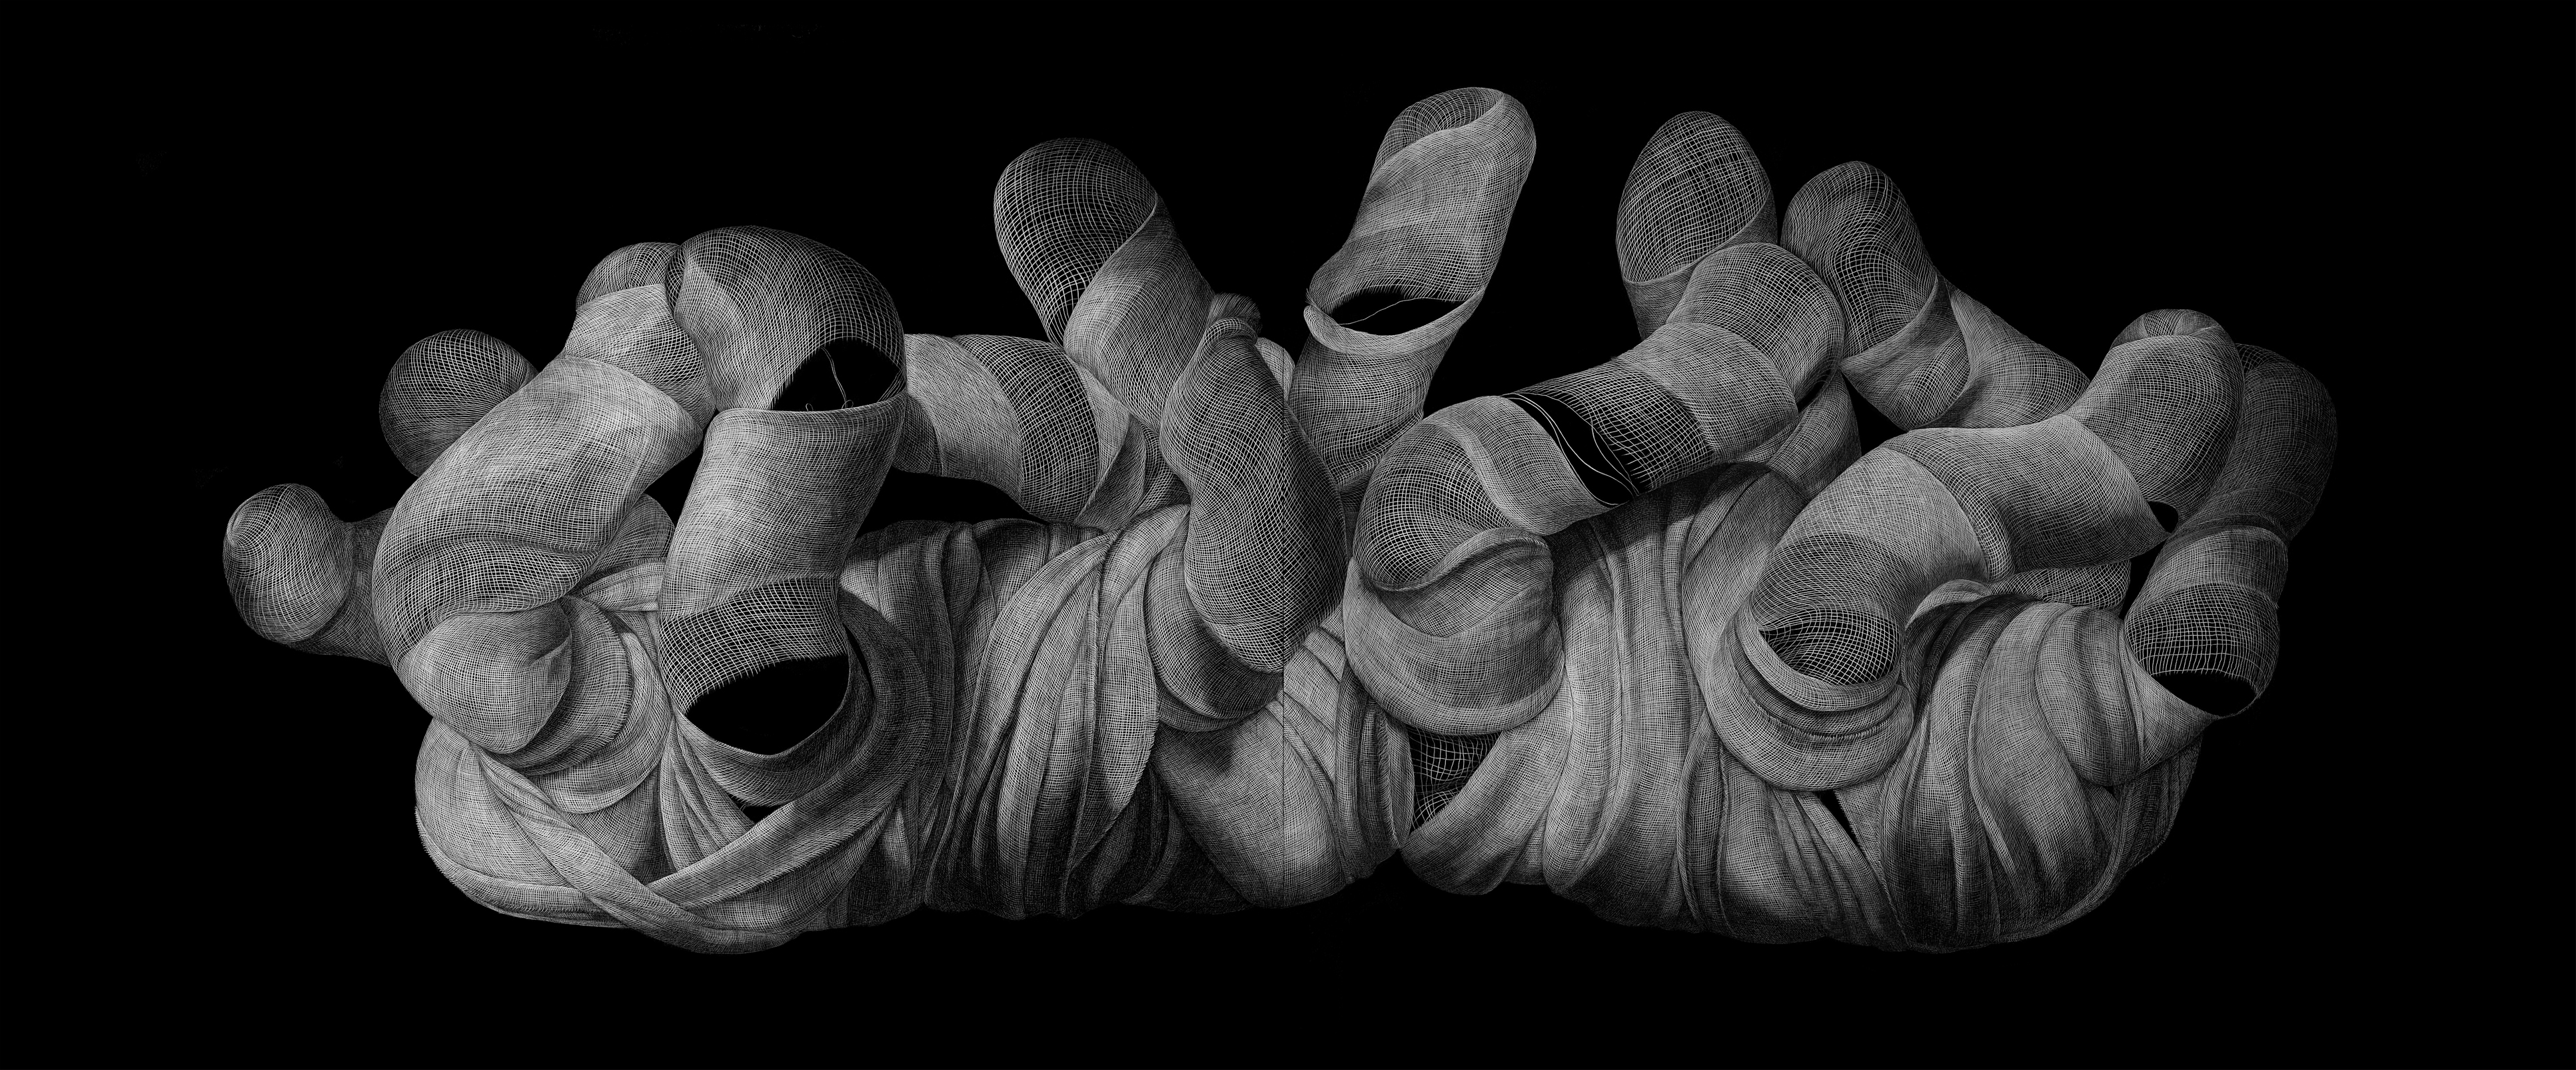 Engraved drawing on plastic vinyl 48 x 120 Inches / 121.92 x 304.8 cm (diptych) 2015